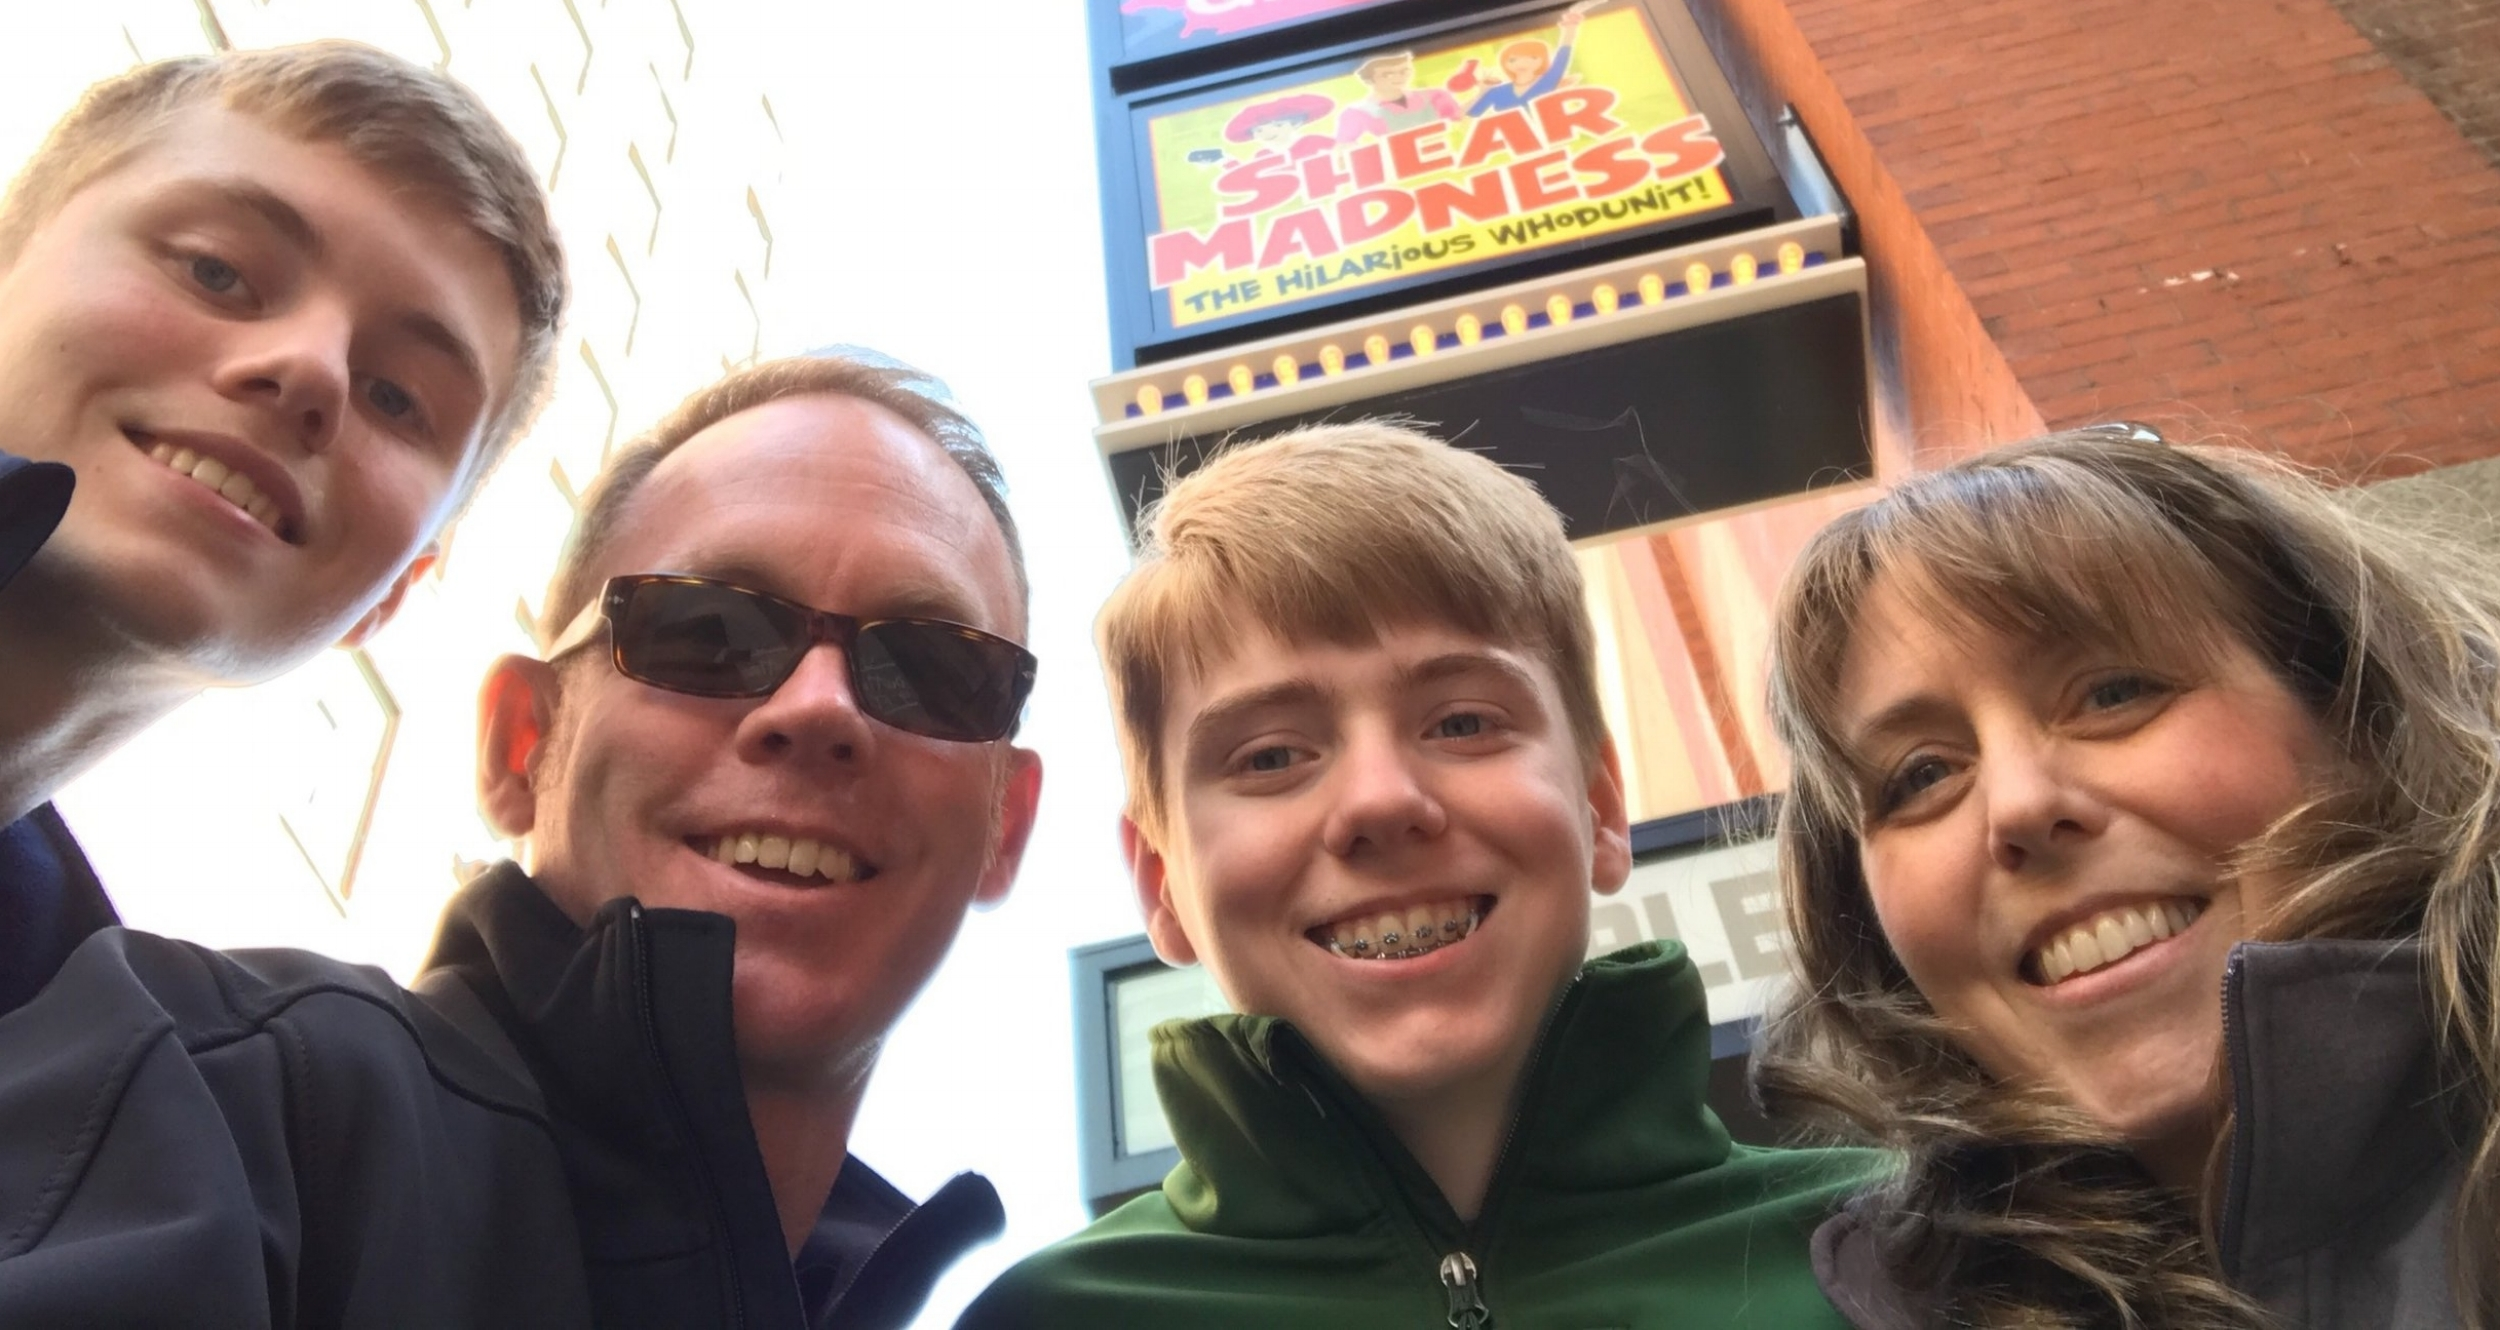 Pam Williams, Founder of  Connect the Dots Education Services , with her husband, Doug, and Twin sons, Nick and Chris in Boston's Theater District.